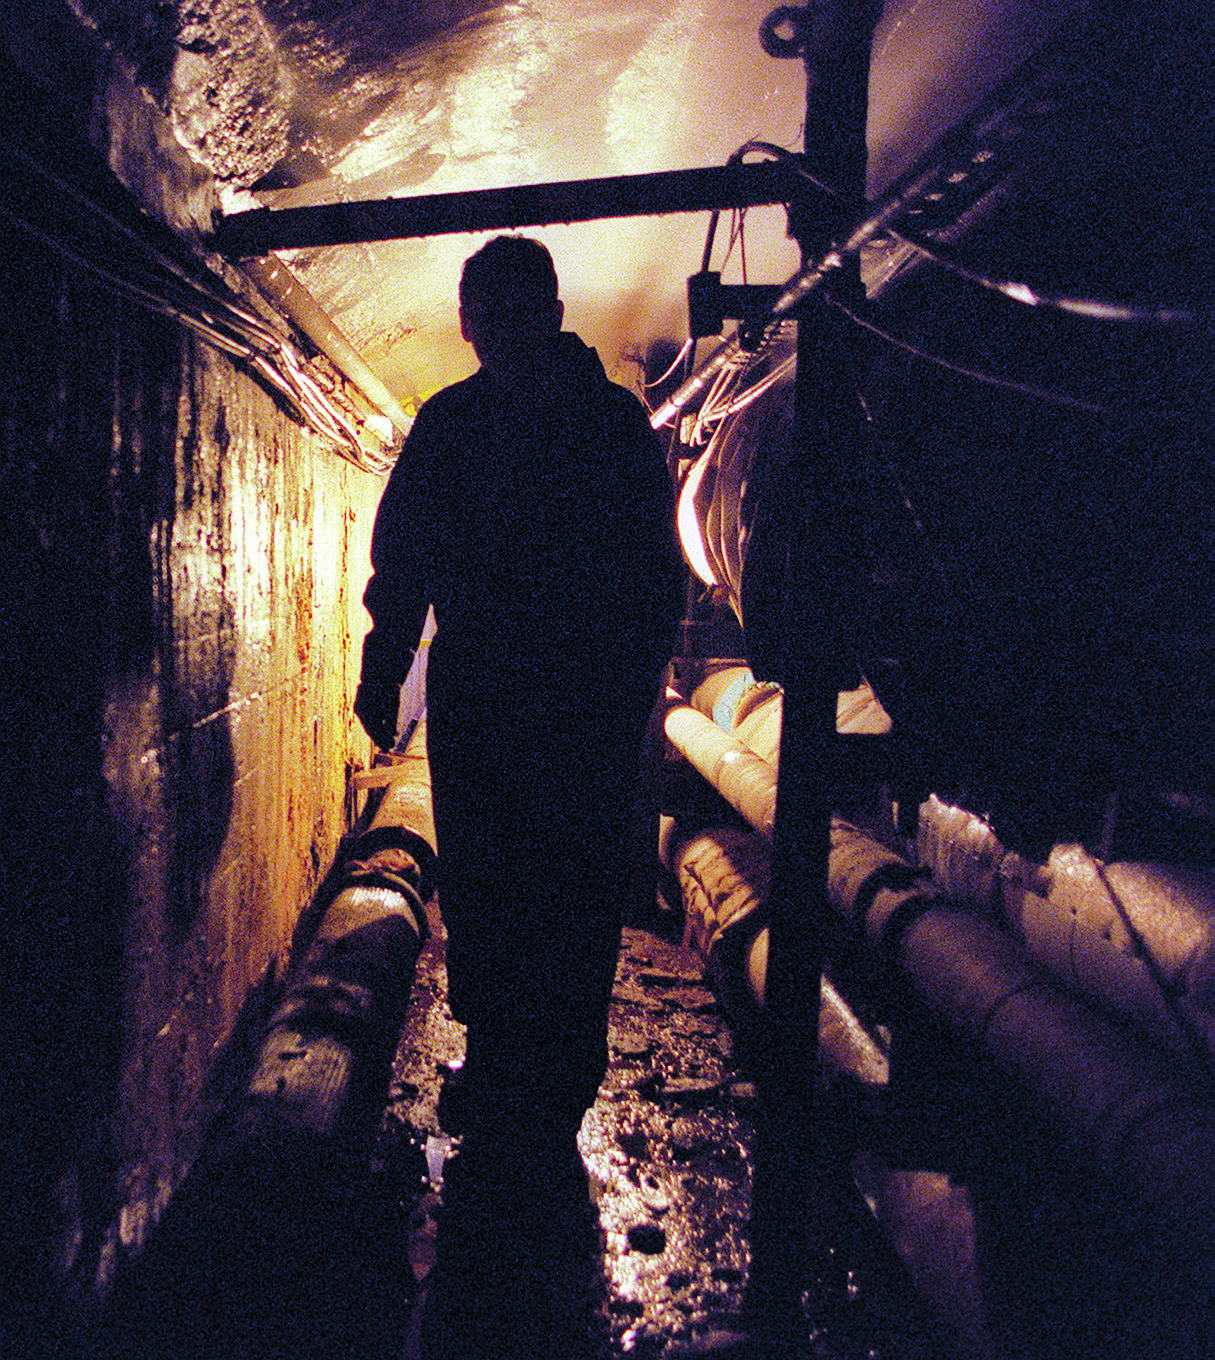 Rick Minton In The U-M Tunnels Under State St Near Michigan Union, February 14, 2000 image